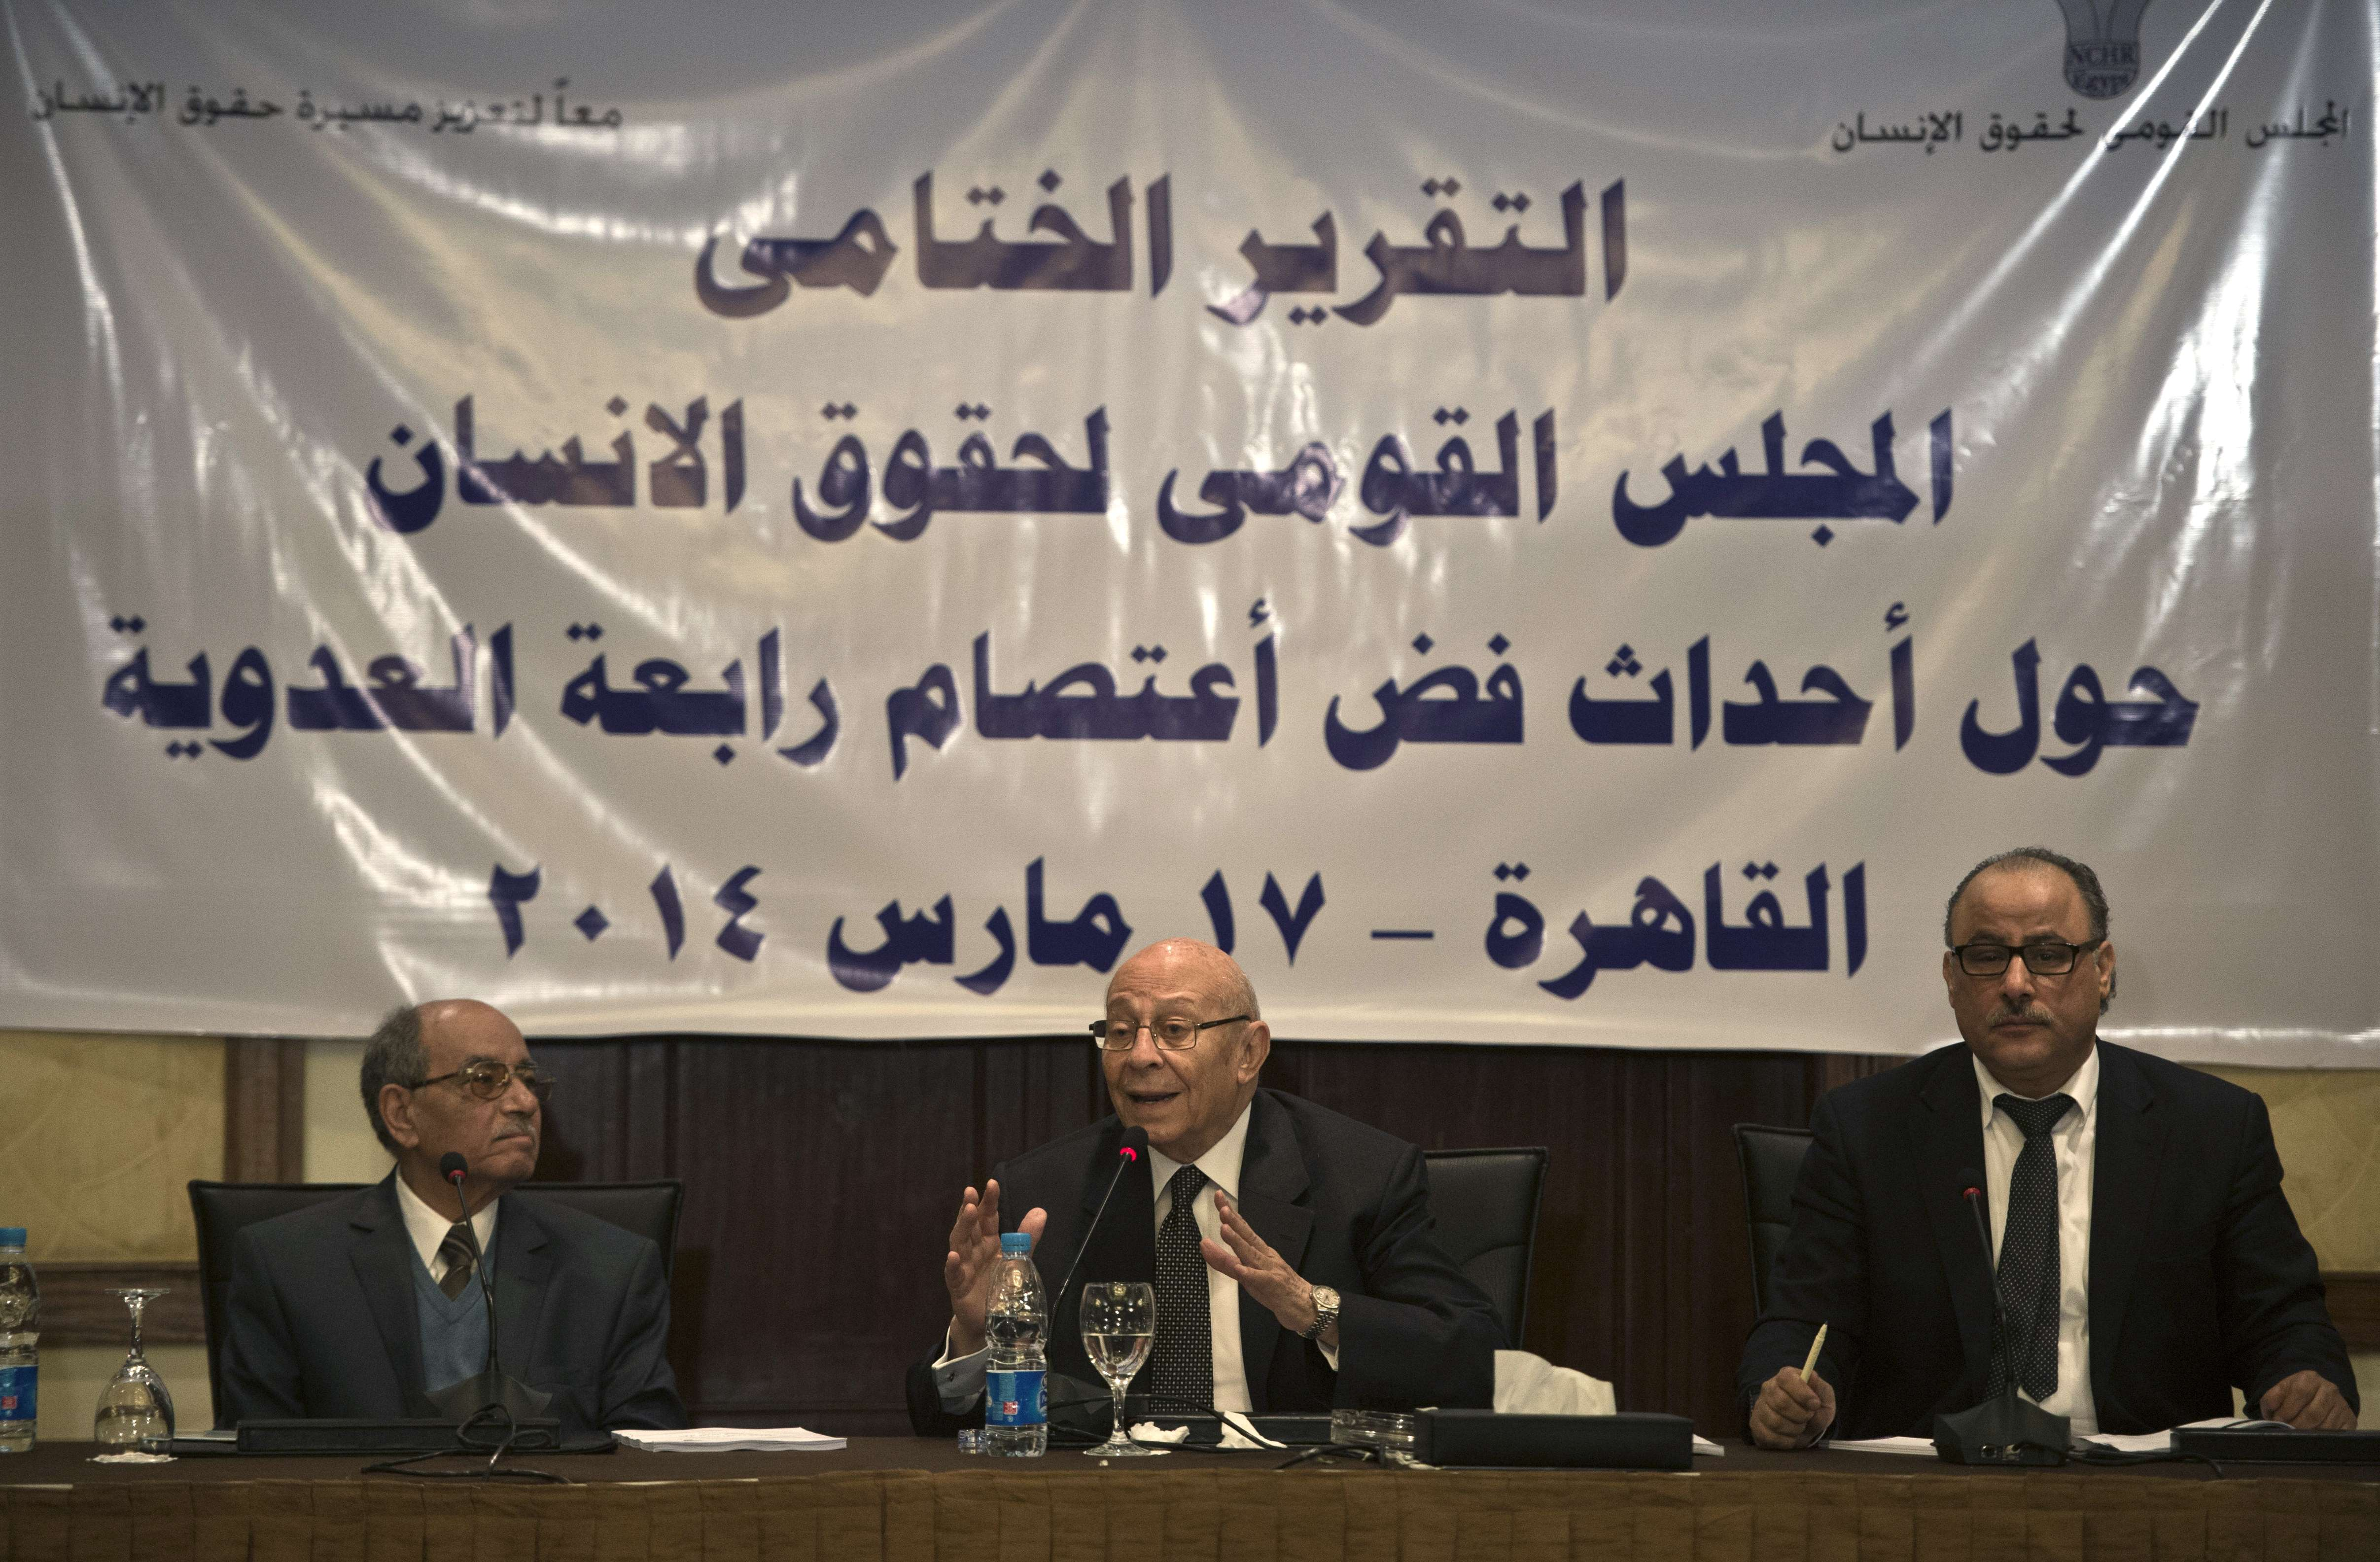 Egyptian Mohamed Fayek (C), head of the National council for human rights, his deputy Abdelghafar Shokr (L) and Nasser Amin, member of the council, attend a press conference in Cairo on March 17, 2014, to announce the fact-finding report in relation to the elimination of the Rabaa al-Adawiya square sit-in, which grew in support of Egypt's ousted Islamist leader Mohamed Morsi.  (AFP PHOTO / KHALED DESOUKI)